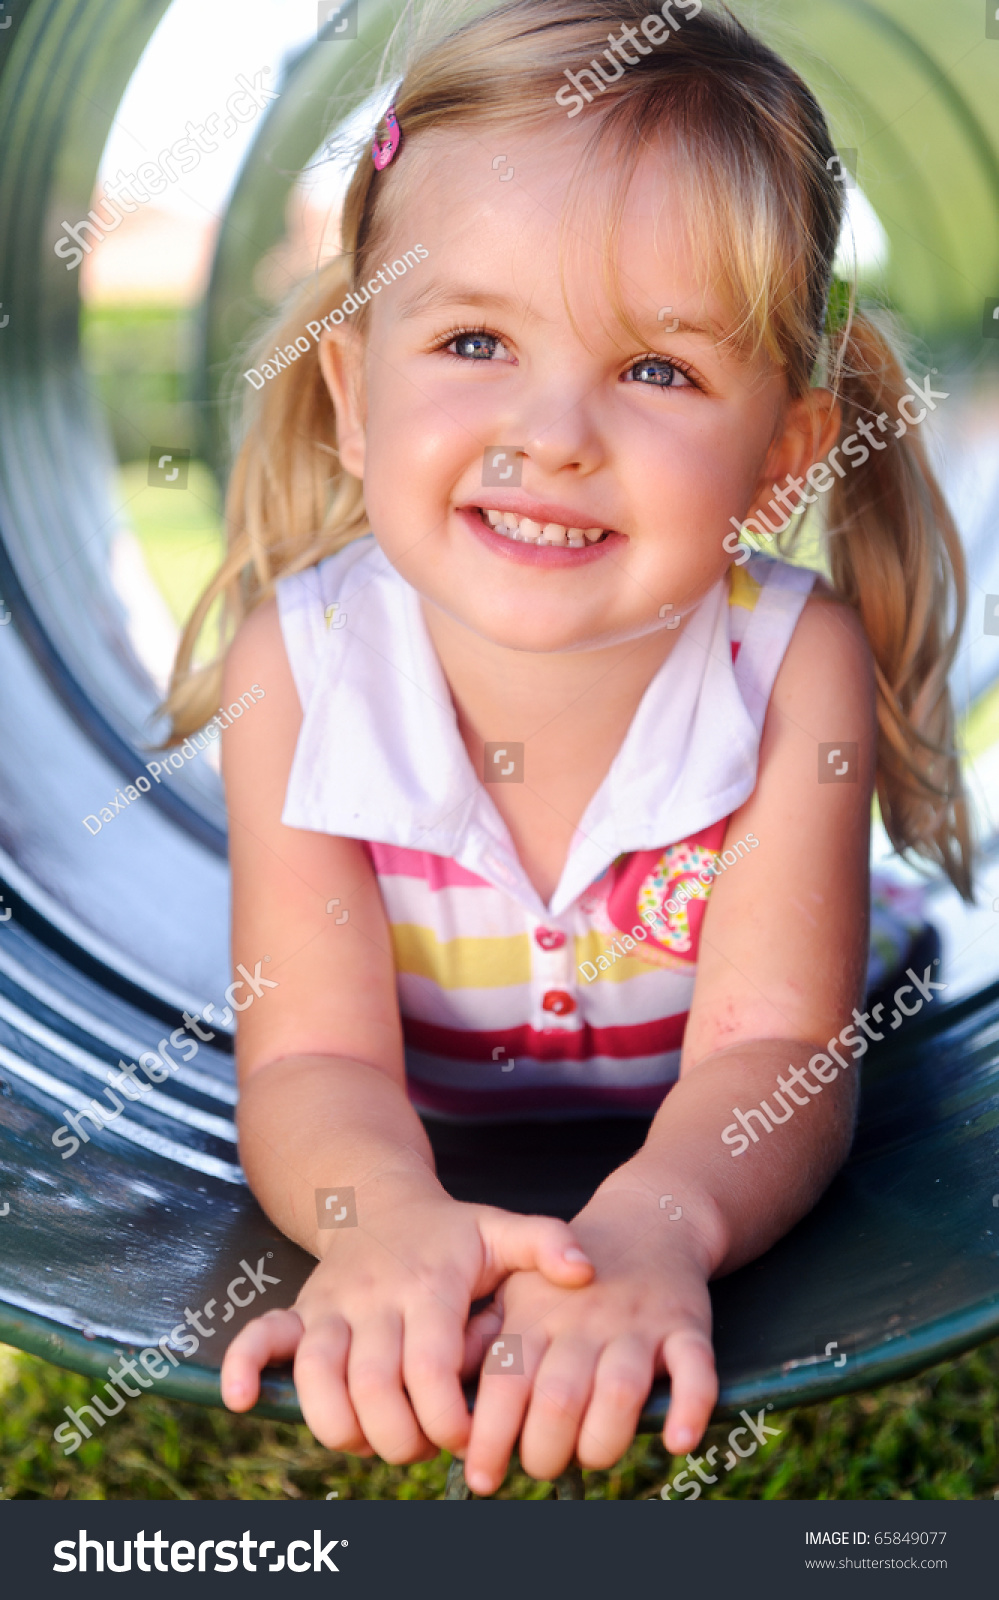 Cute Stock Photography: Cute Girl Poses Tunnel Playground Stock Photo 65849077